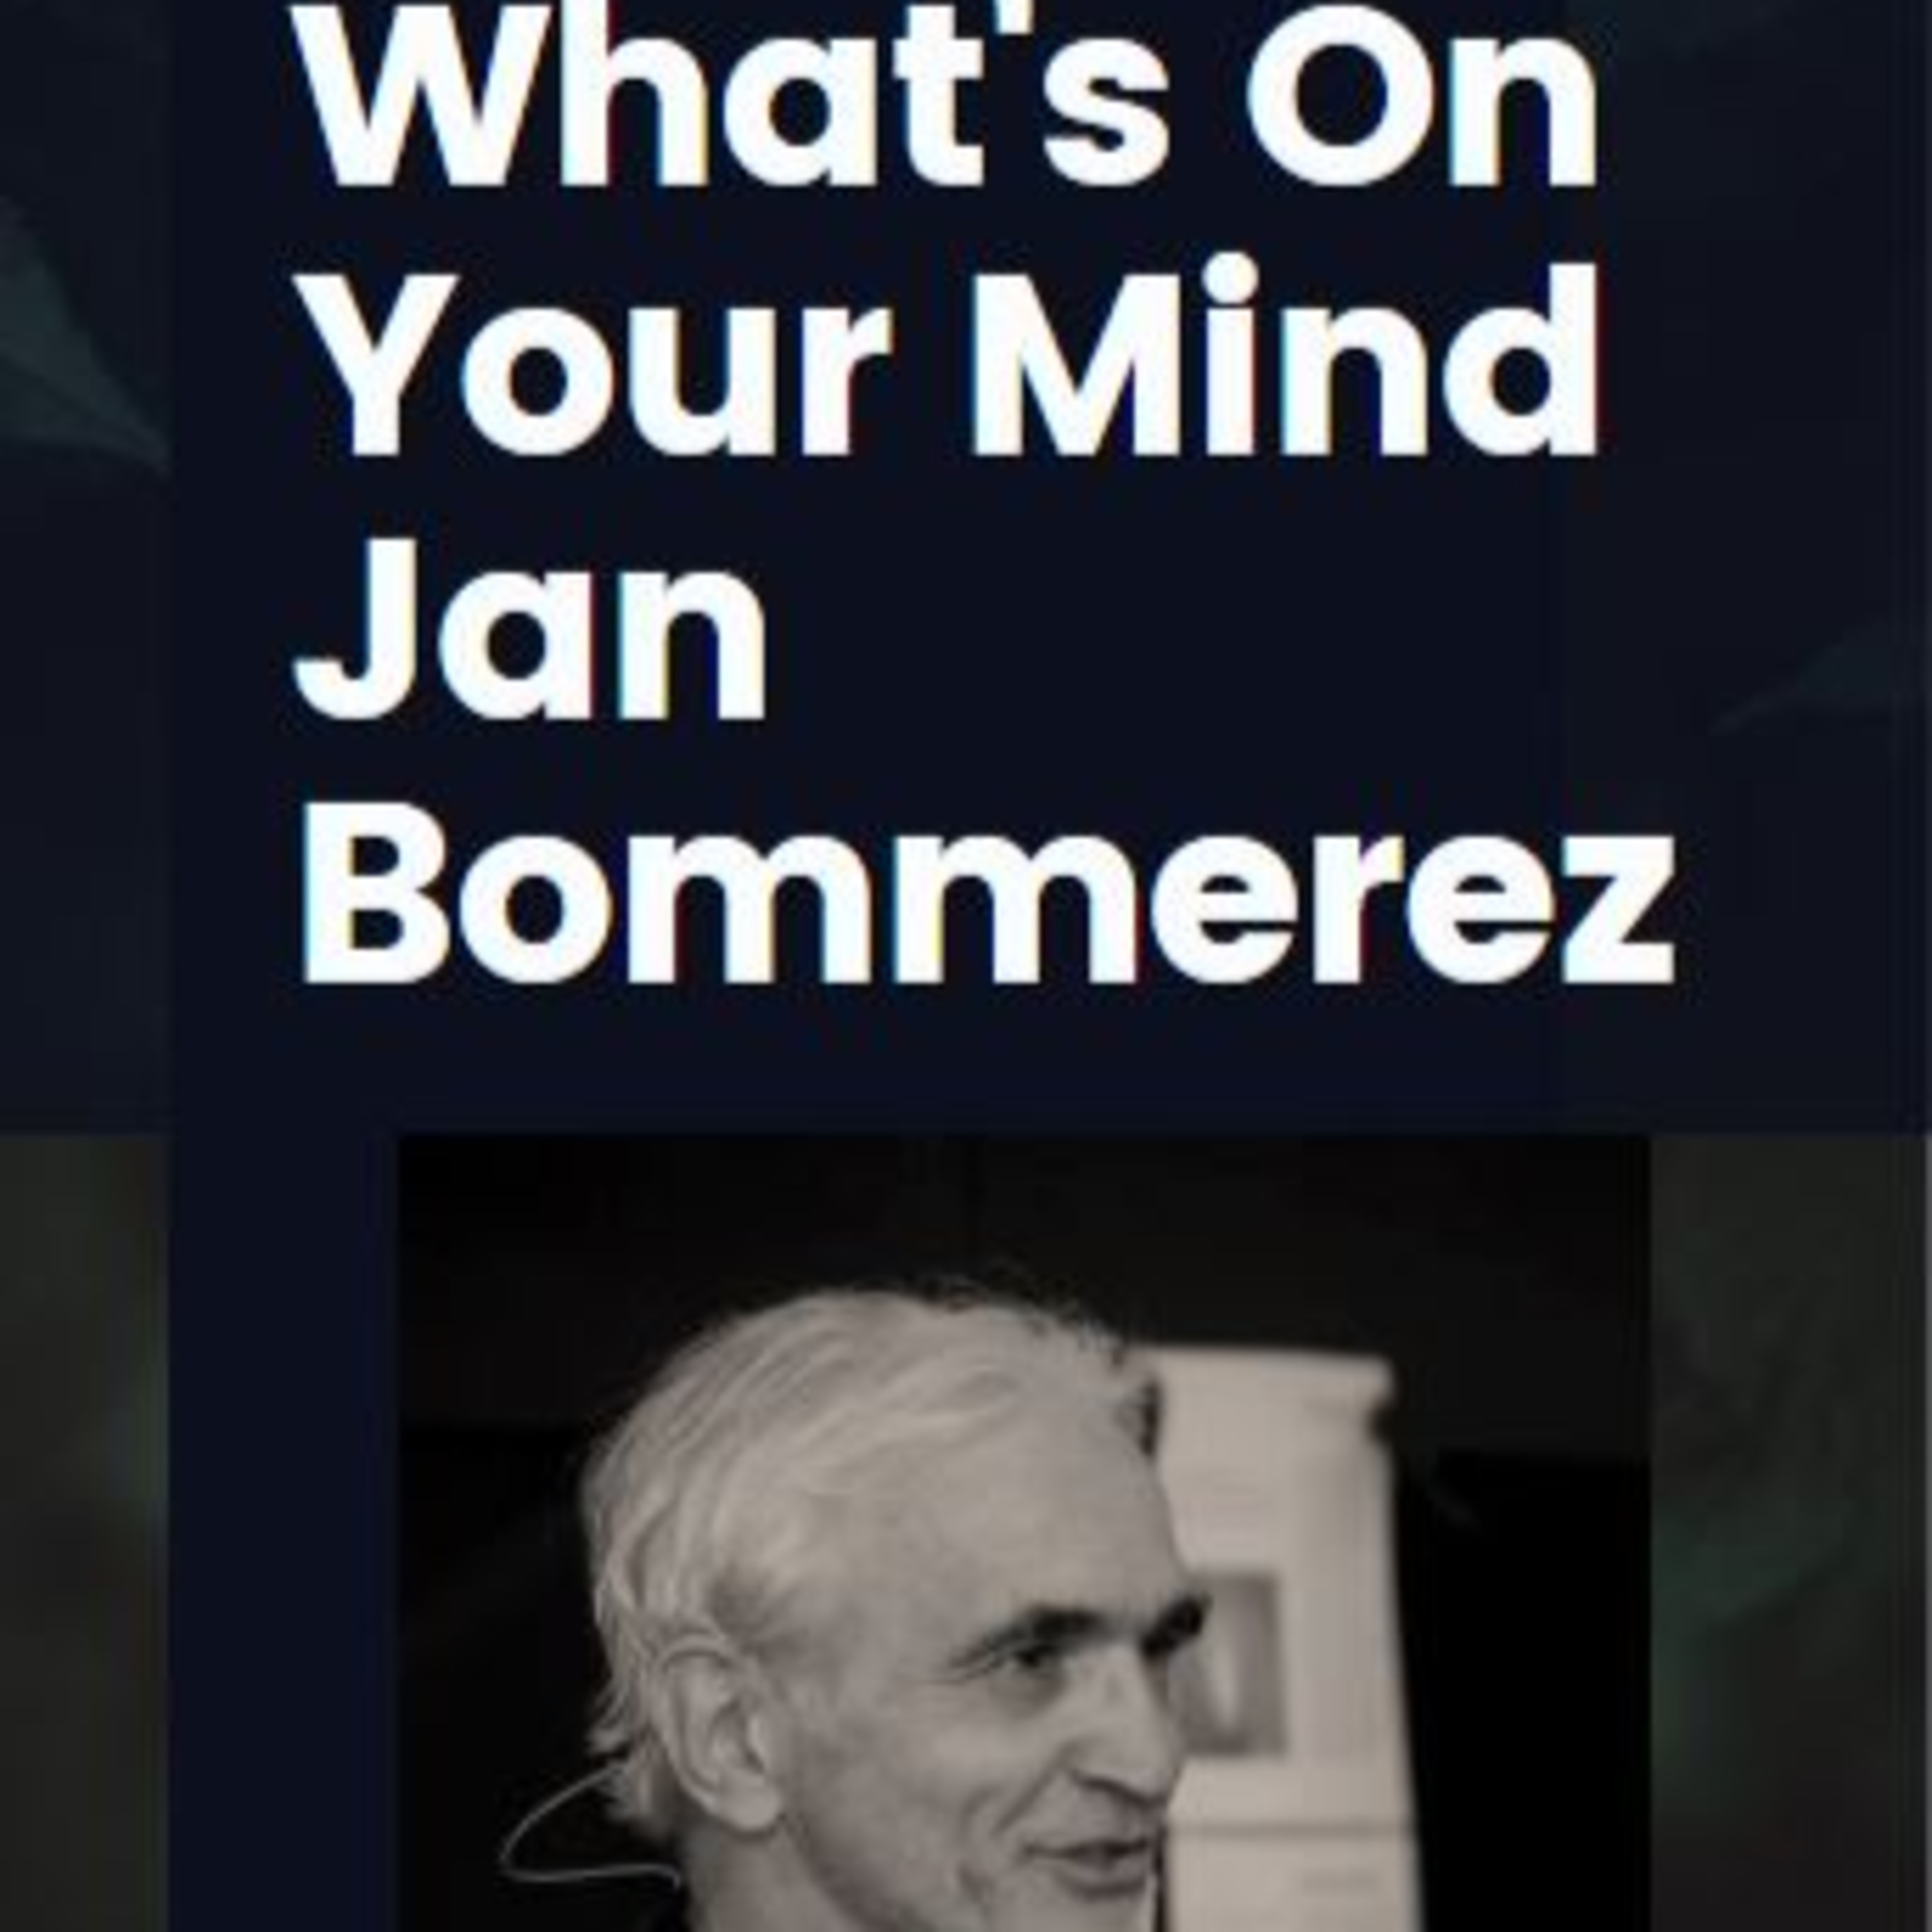 What's On Your Mind 4: Jan Bommerez